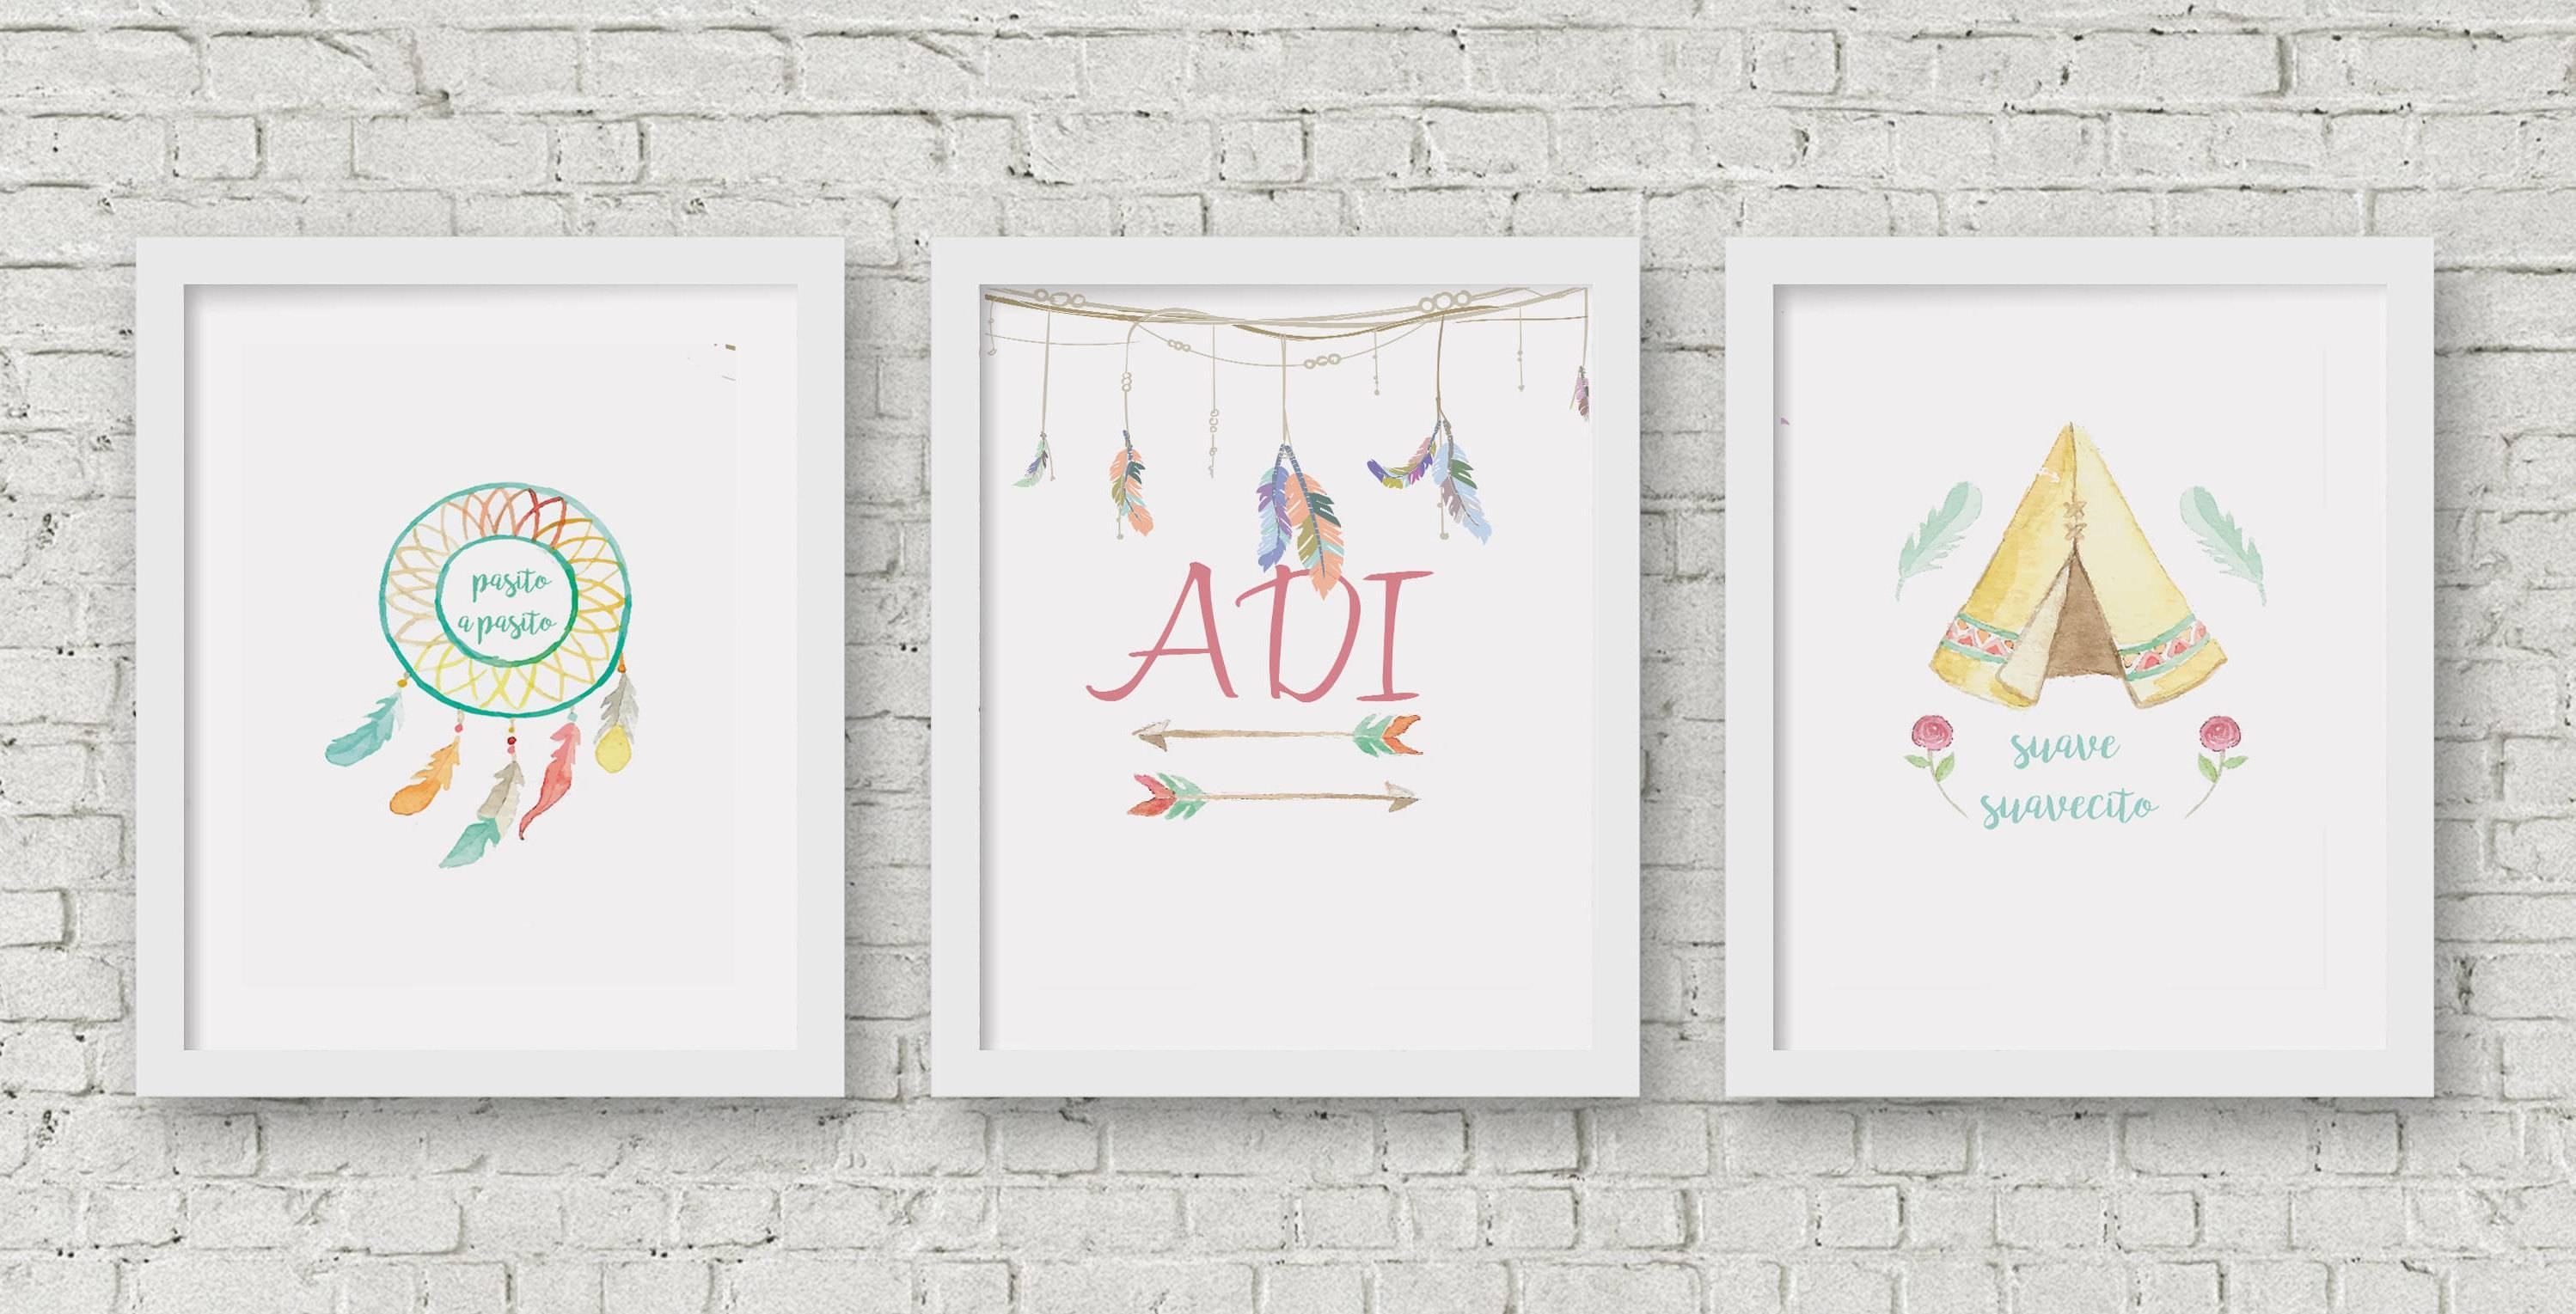 Boho Wall Art Set, Wall Decor Printable, Teenage Wall Poster Within Latest Teenage Wall Art (View 17 of 30)